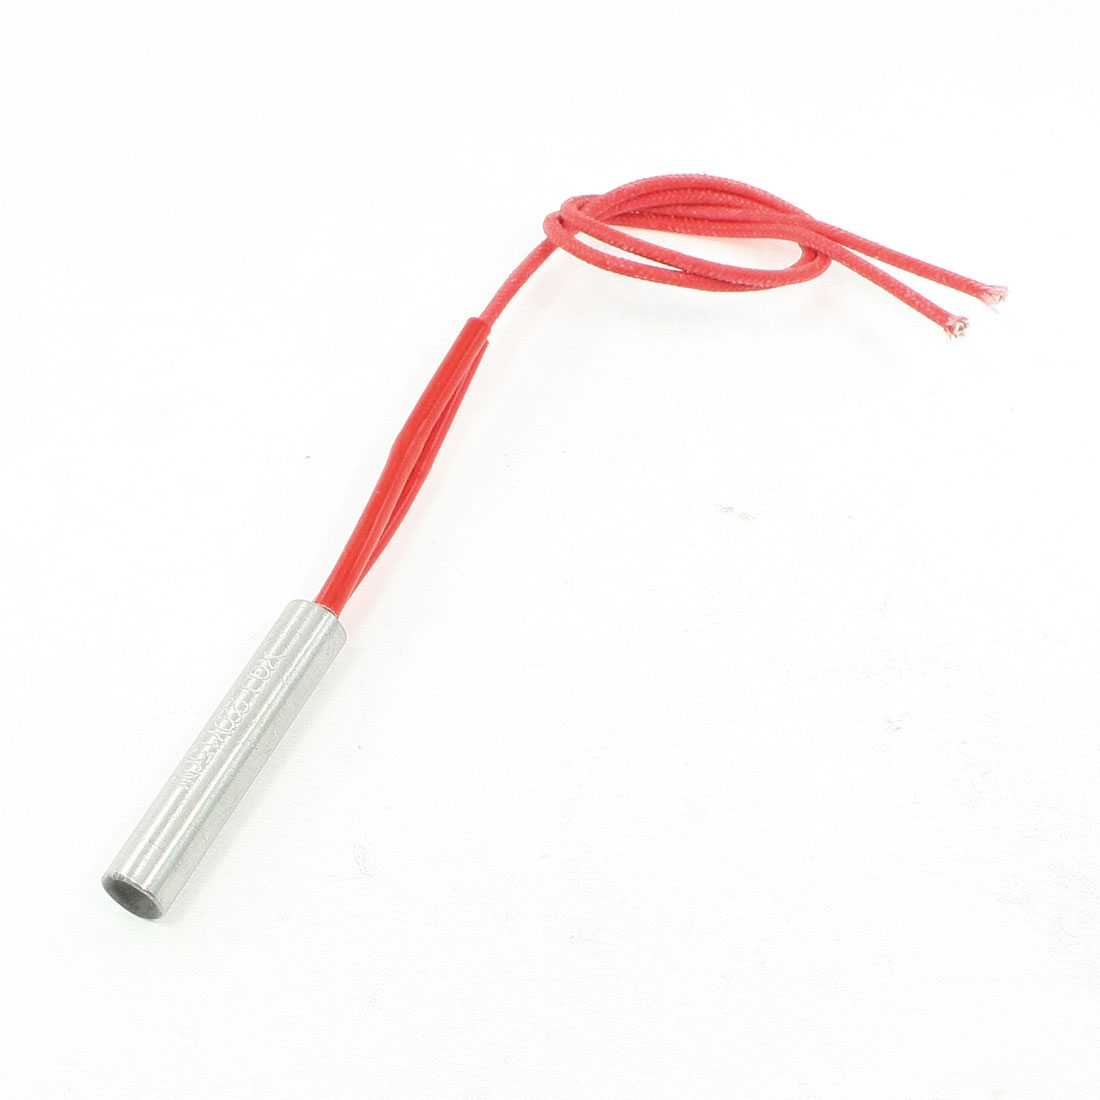 Red Wired 220V 150W 10mm x 50mm Cartridge Heater Heating Element